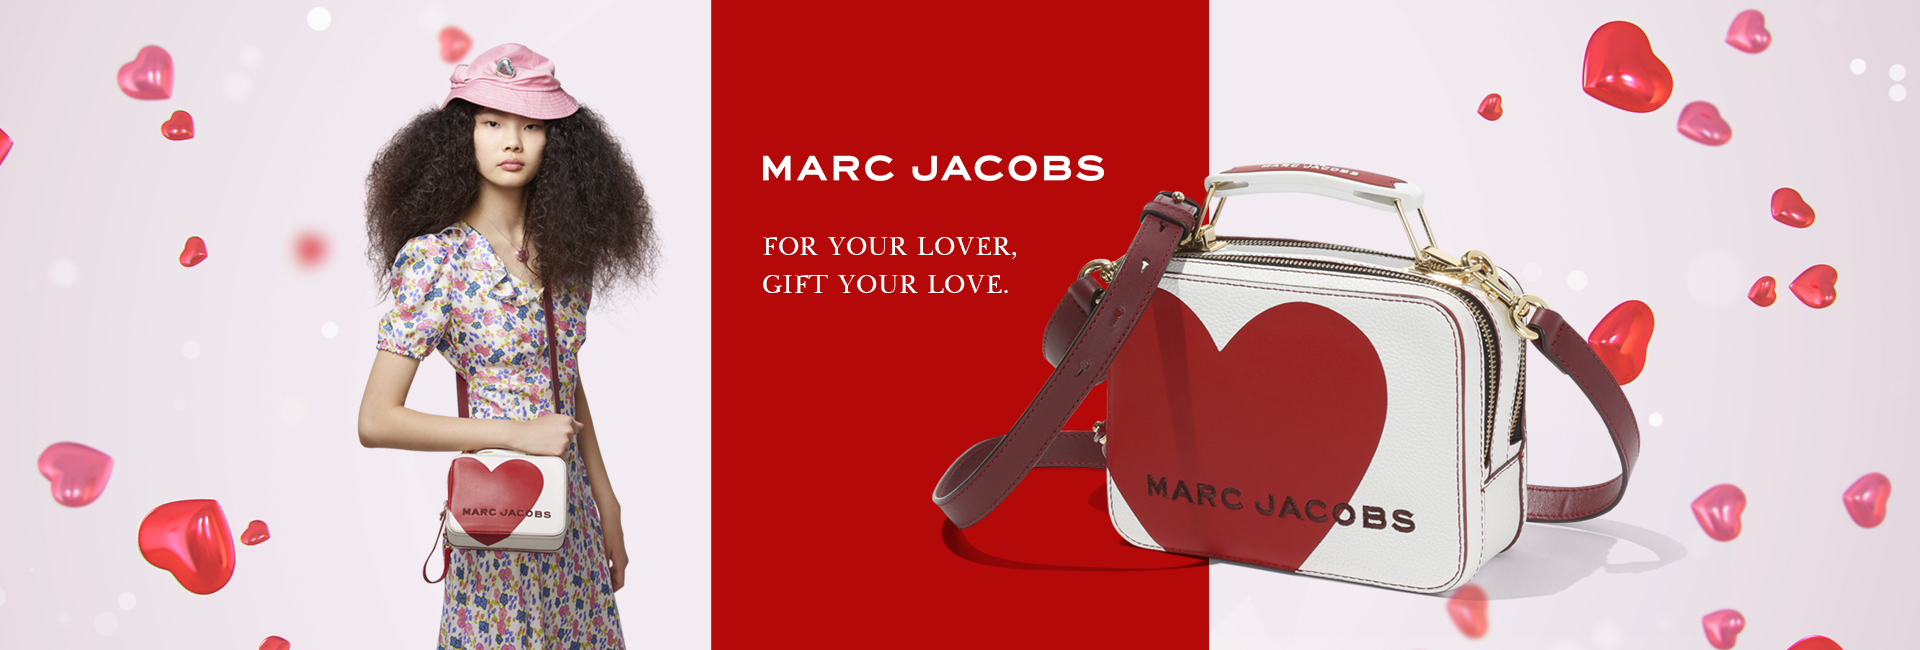 MJ_FOR YOUR LOVER, GIFT YOUR LOVE_PC